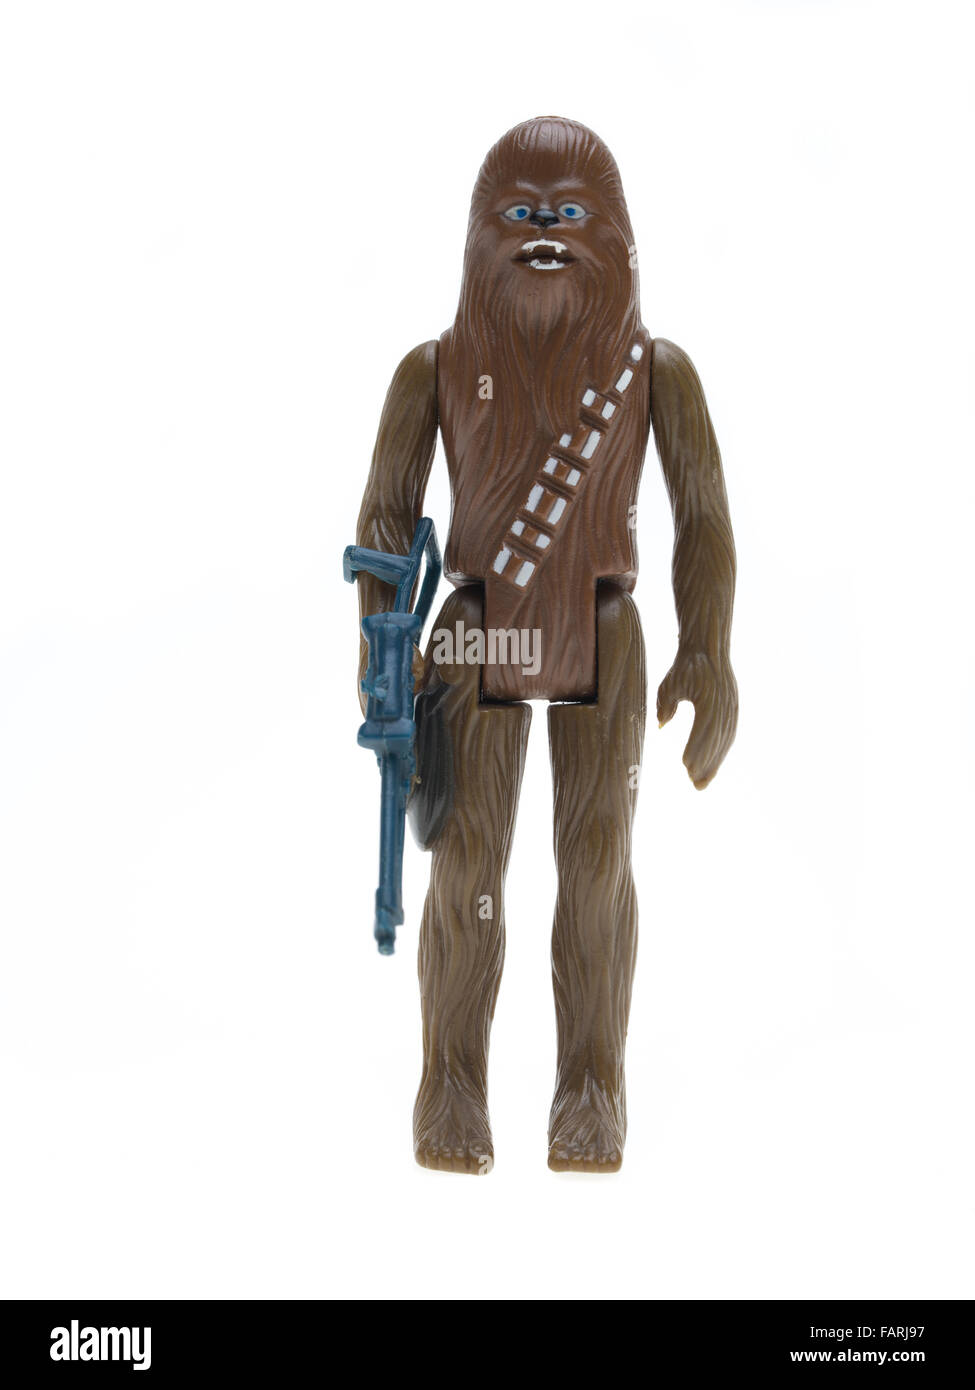 Star Wars action figure by Kenner 1977  Chewbacca, - Stock Image